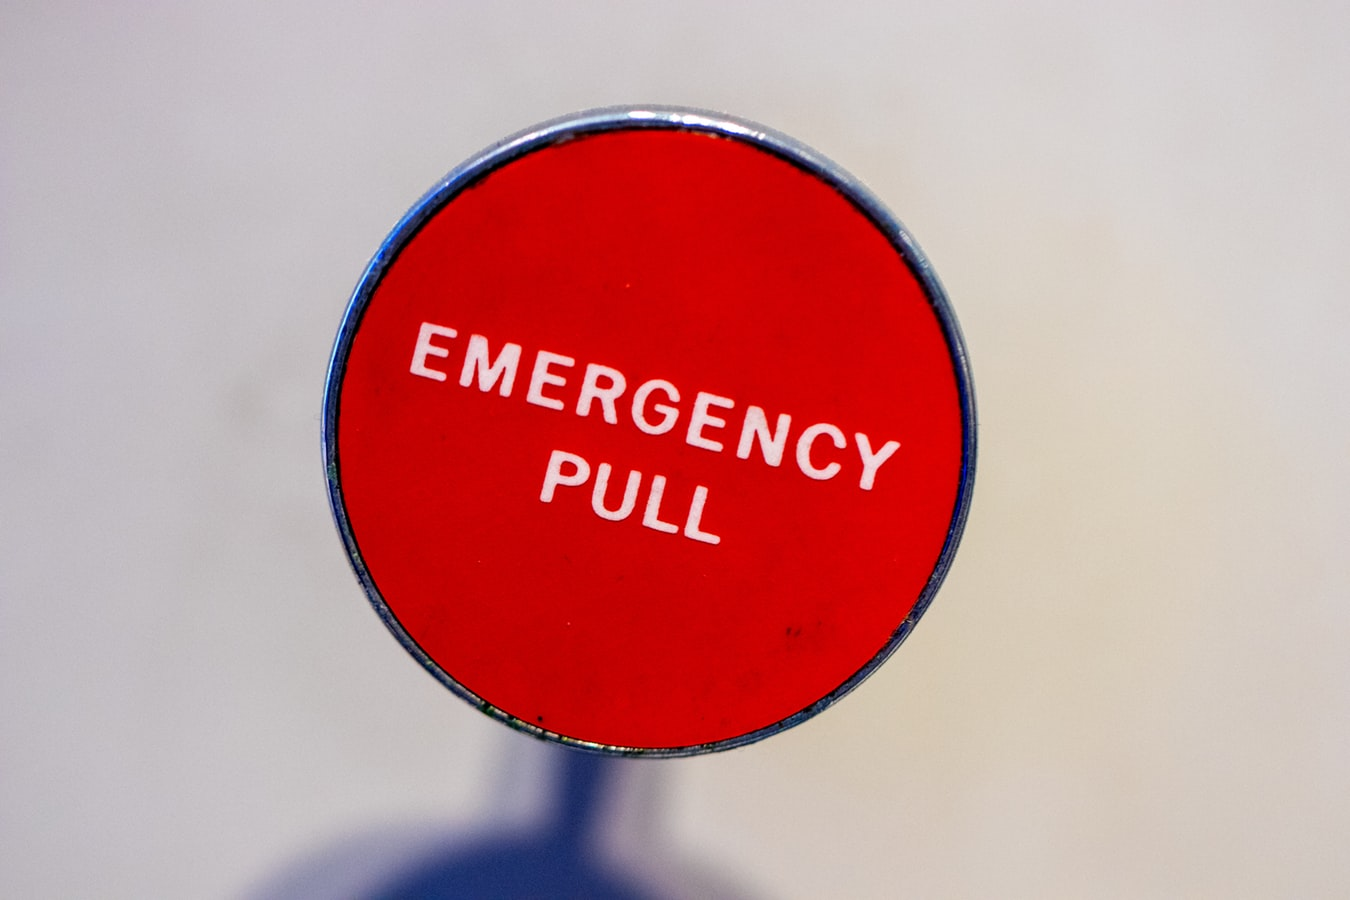 Image of an emergency pull cord.